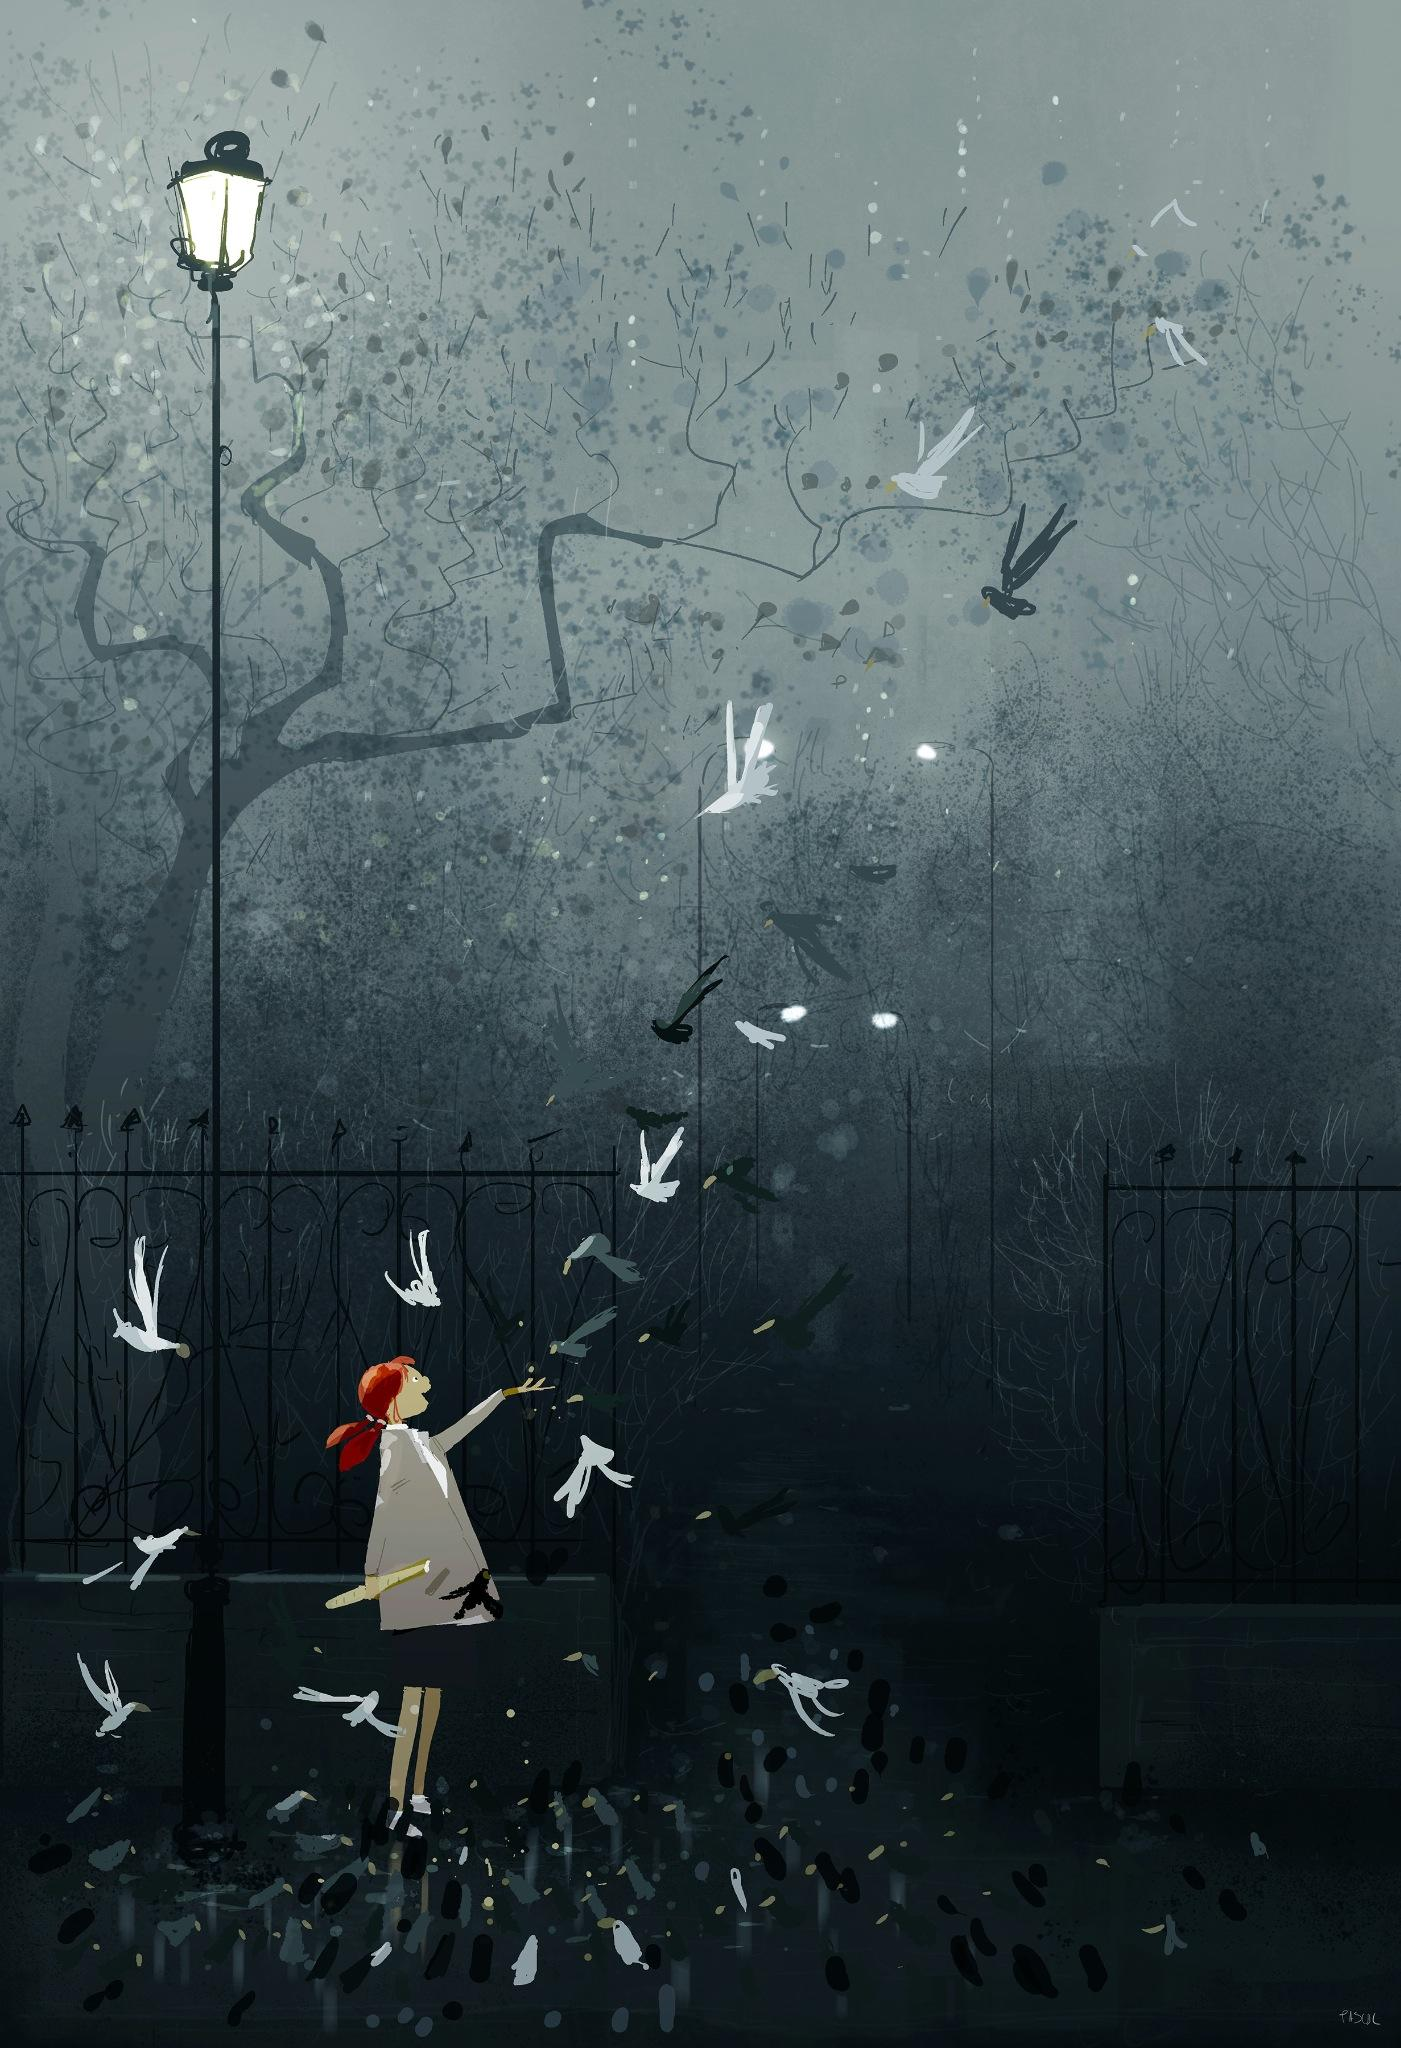 Pascal Campion On Twitter My Favorite Type Of Mornings